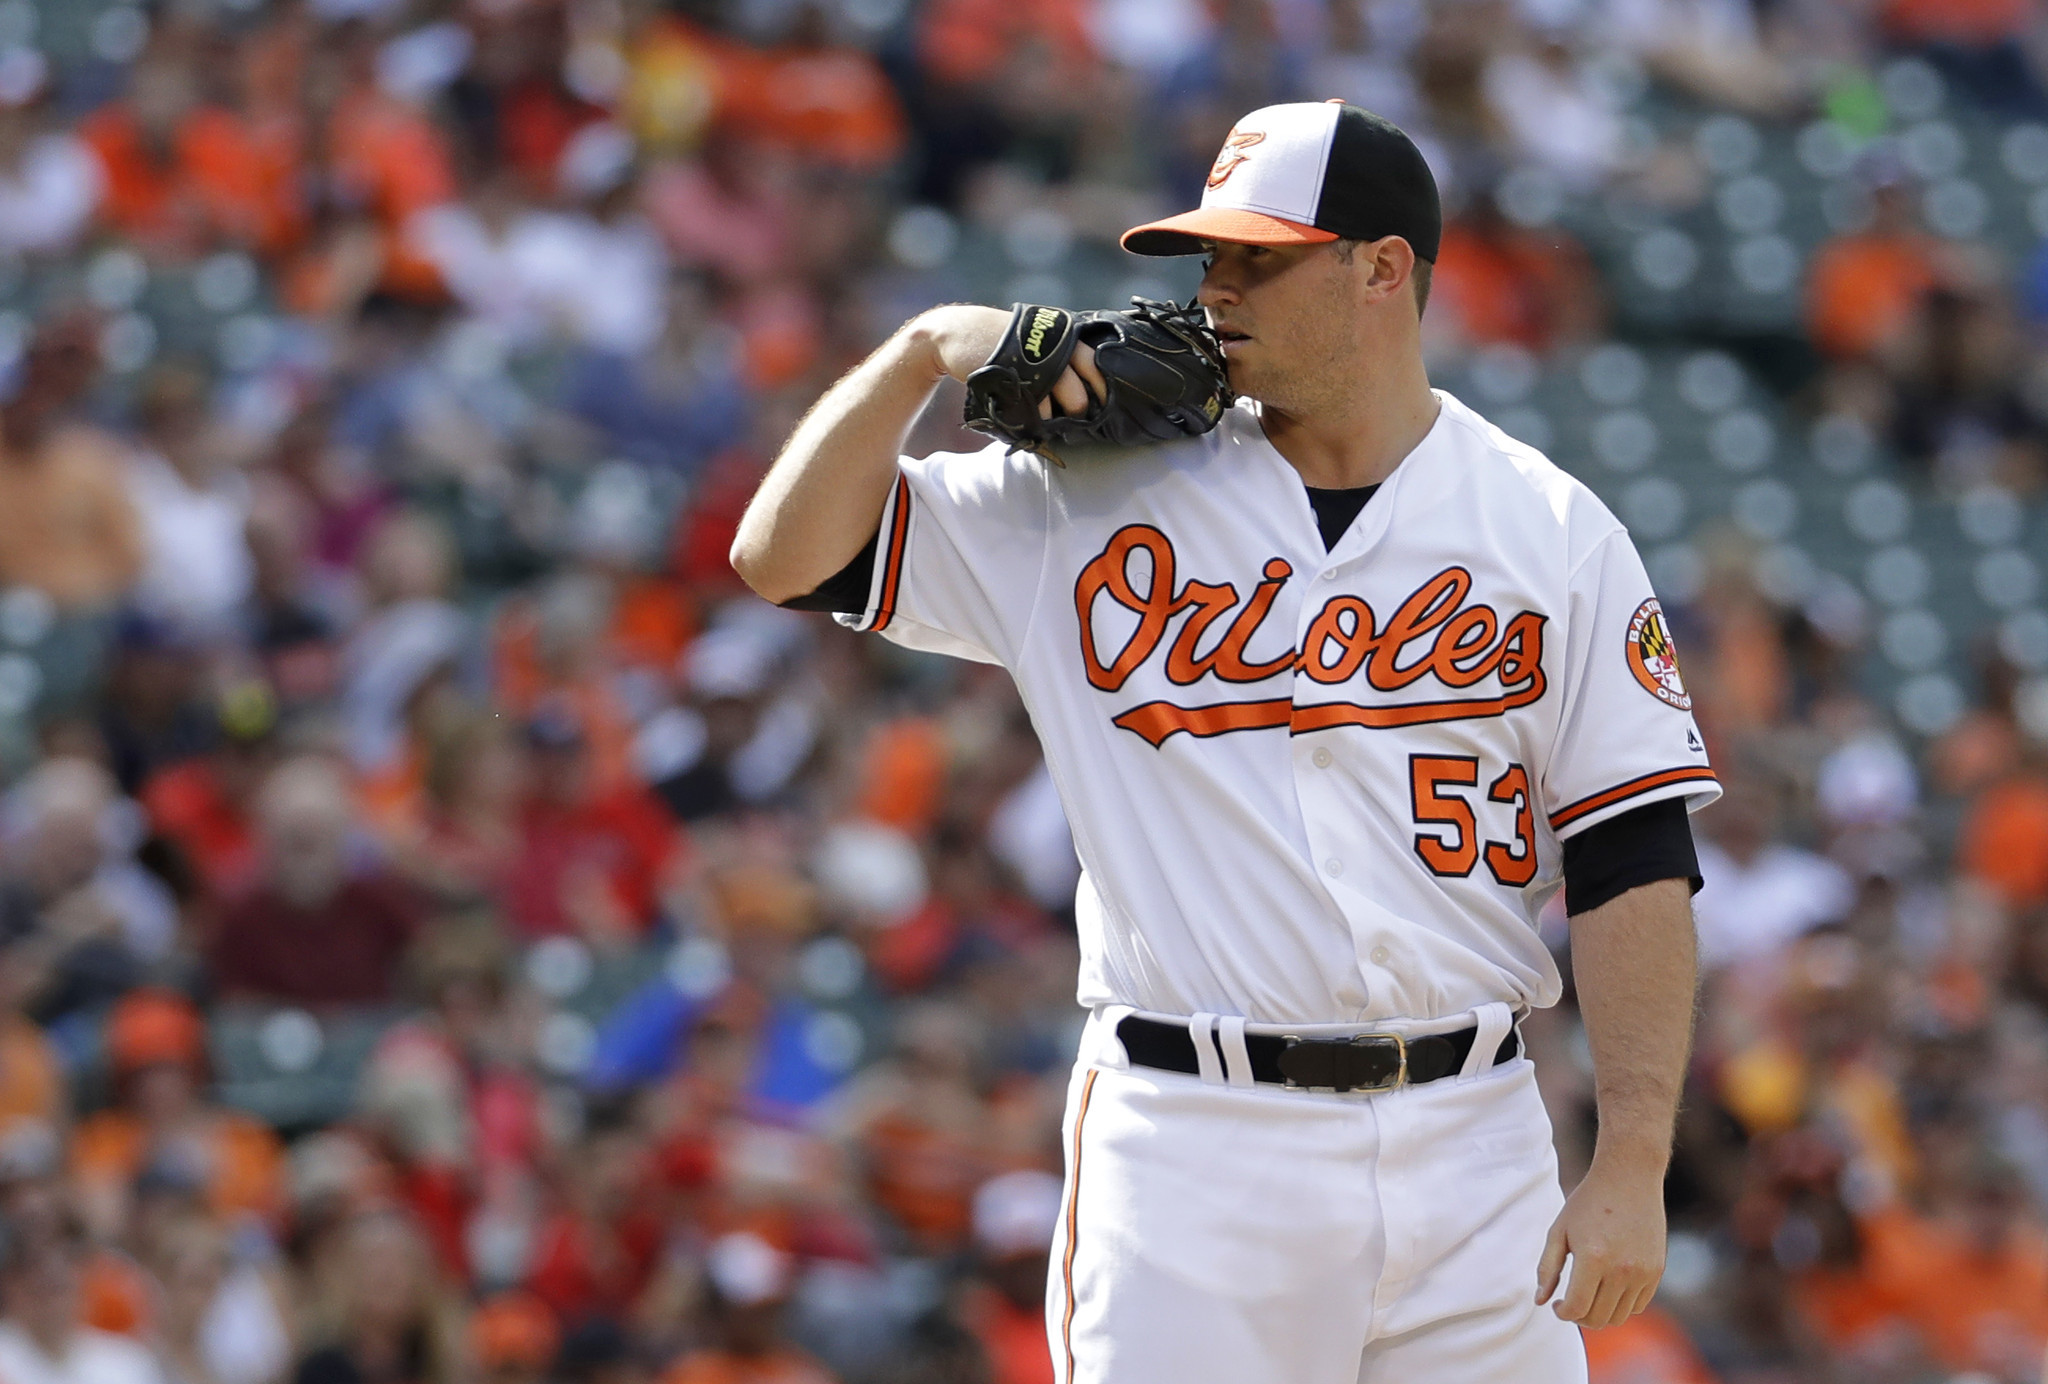 Bal-five-stats-that-stand-out-about-dominant-orioles-closer-zach-britton-20160728